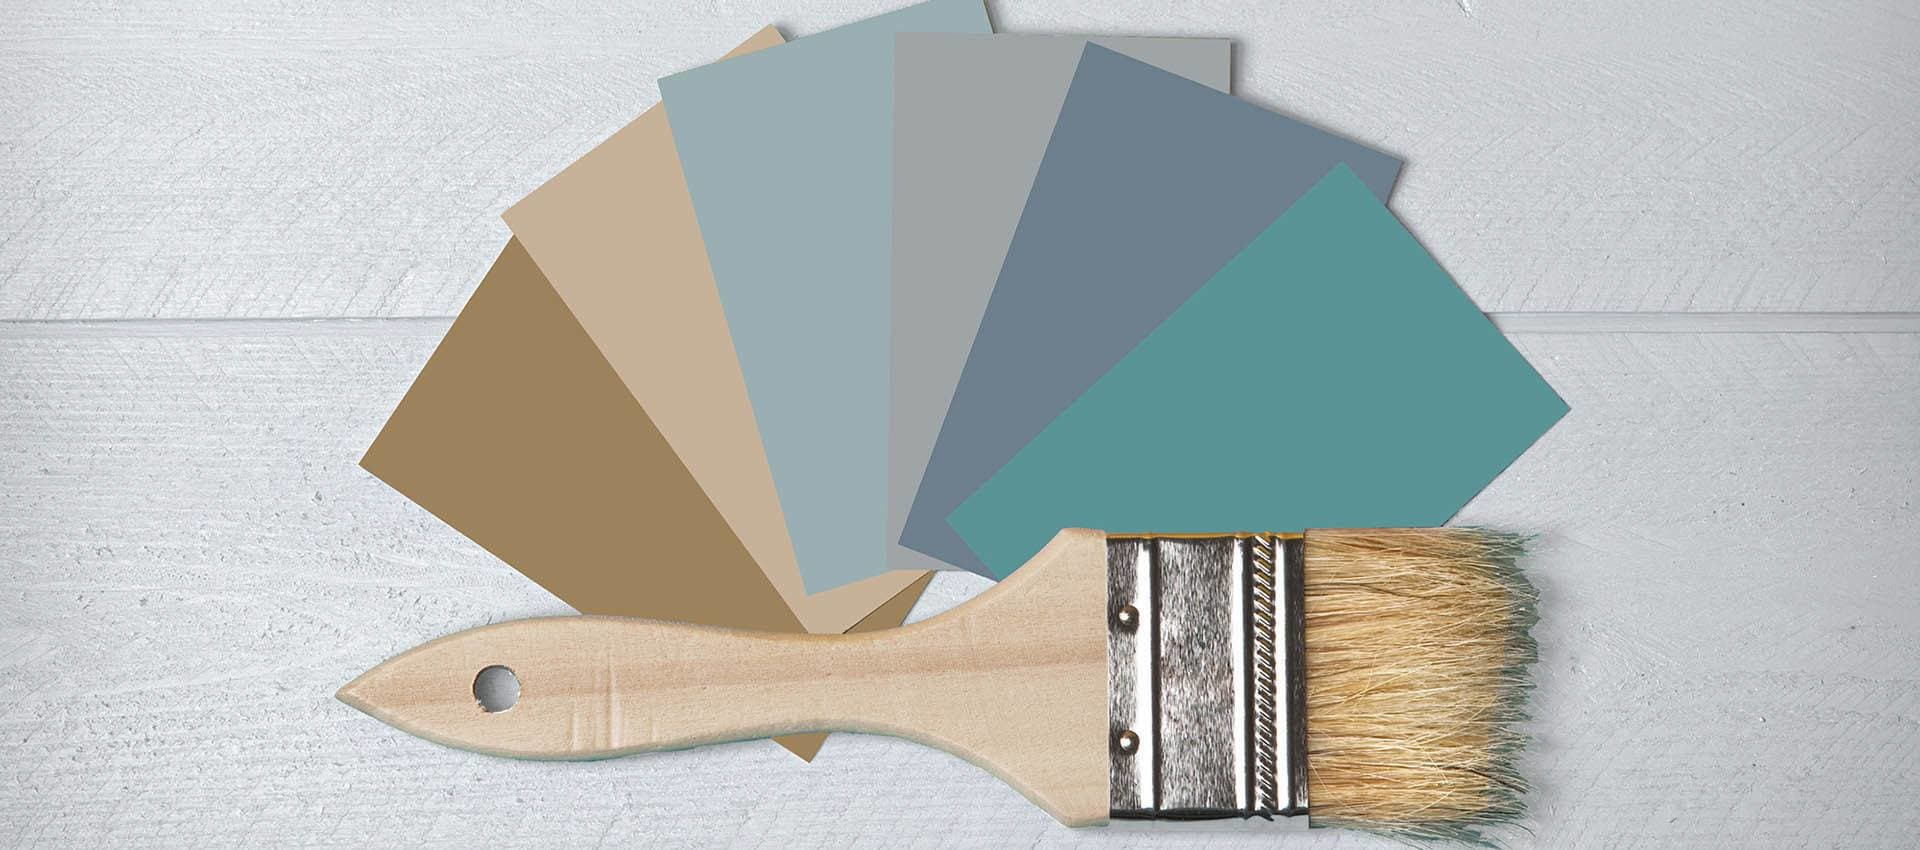 Paint Swatches at Niguel Summit Condominium Rentals in Laguna Niguel